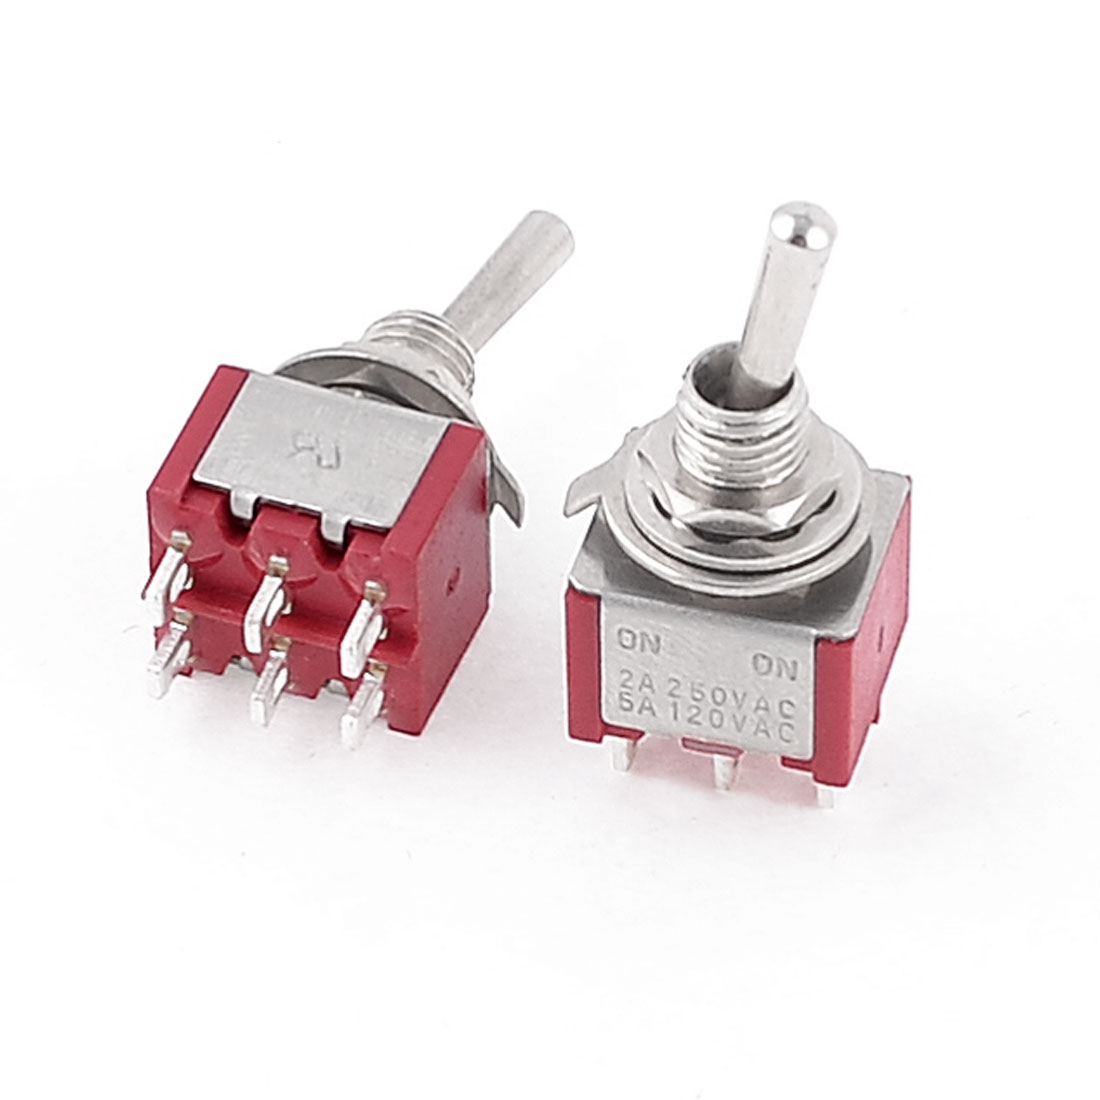 2 Pcs AC 250V 2A 120V 5A ON/ON 2 Position DPDT 6 Terminals Toggle Switch